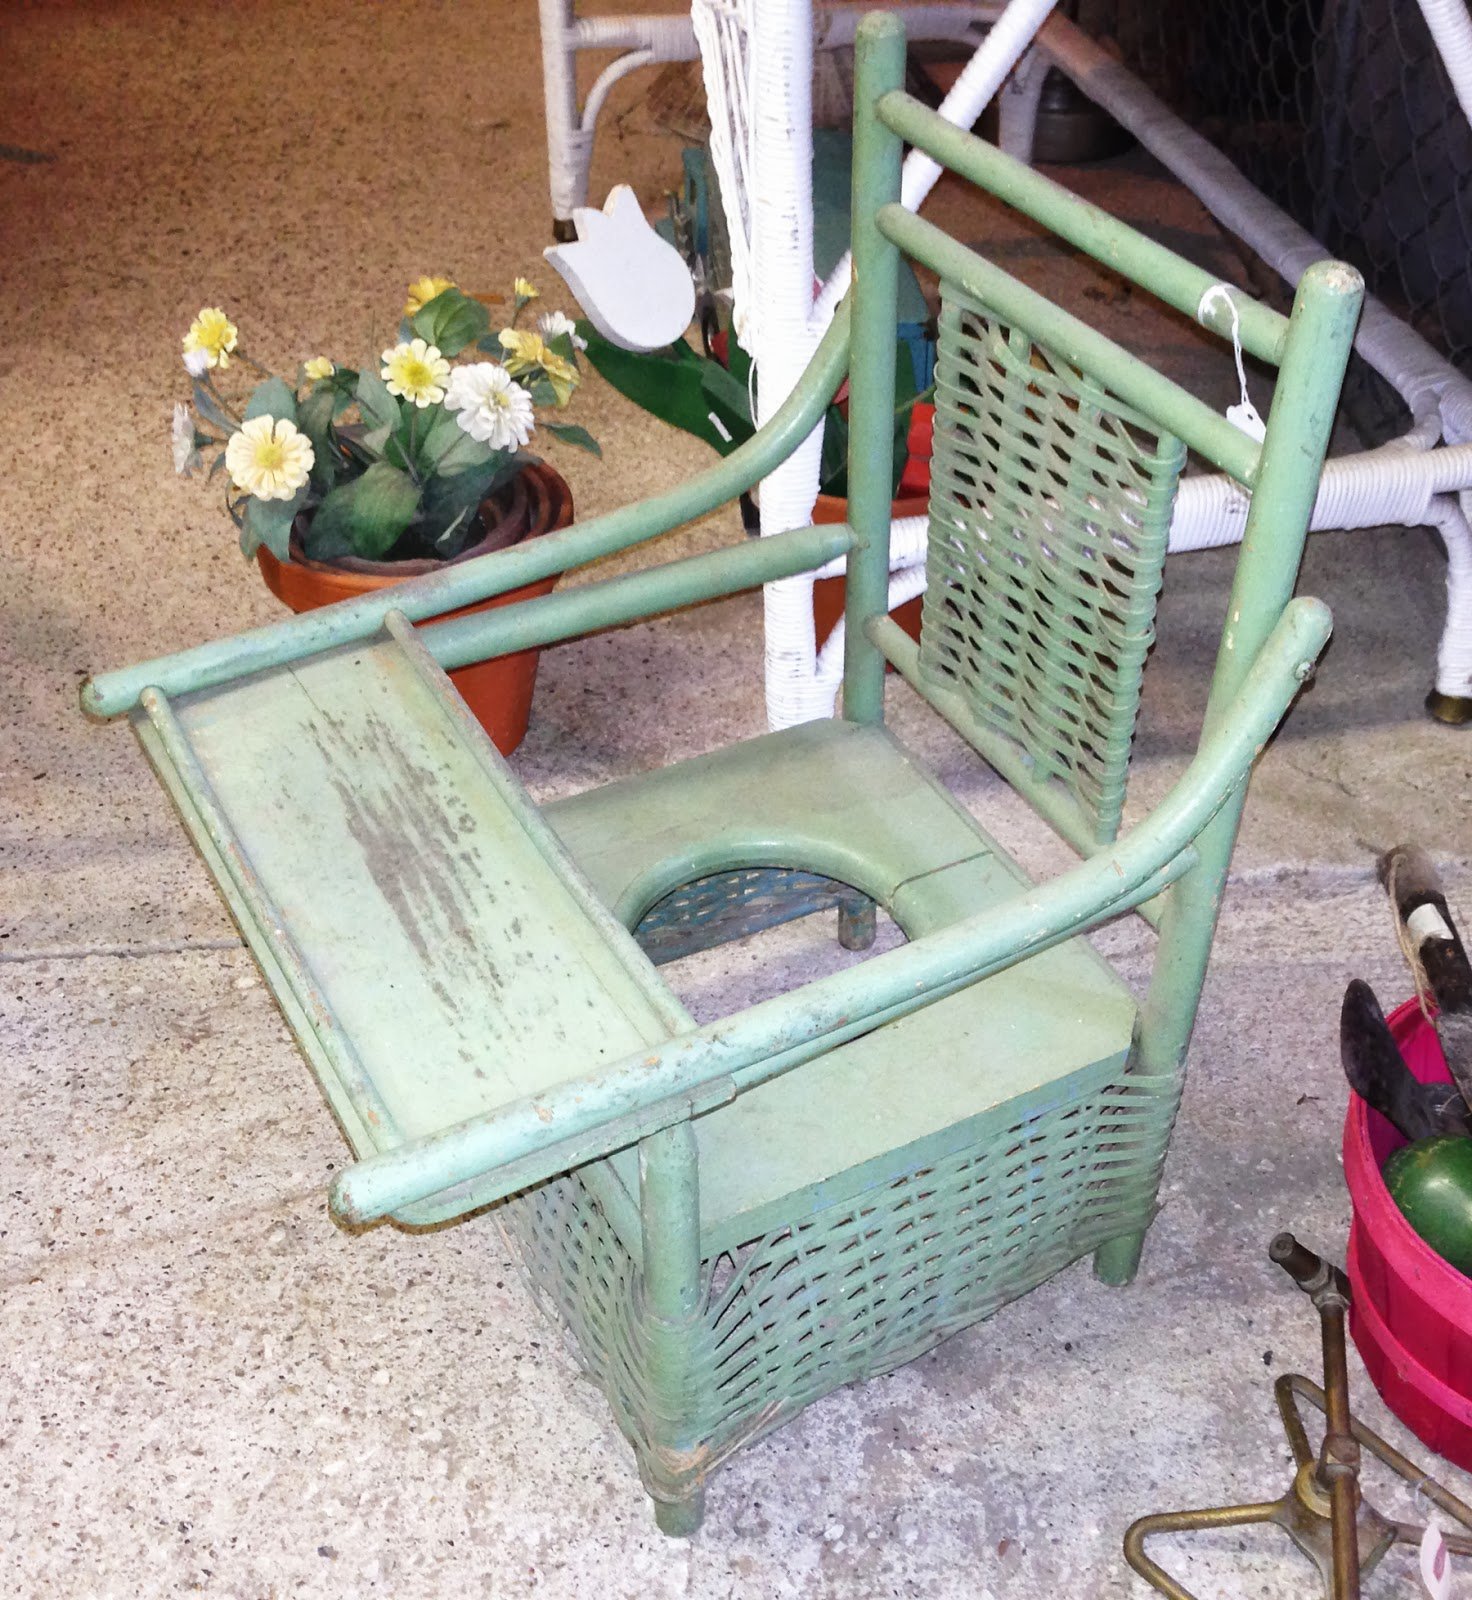 safety 1st potty chair diy patio covers amy bradley designs: all things baby